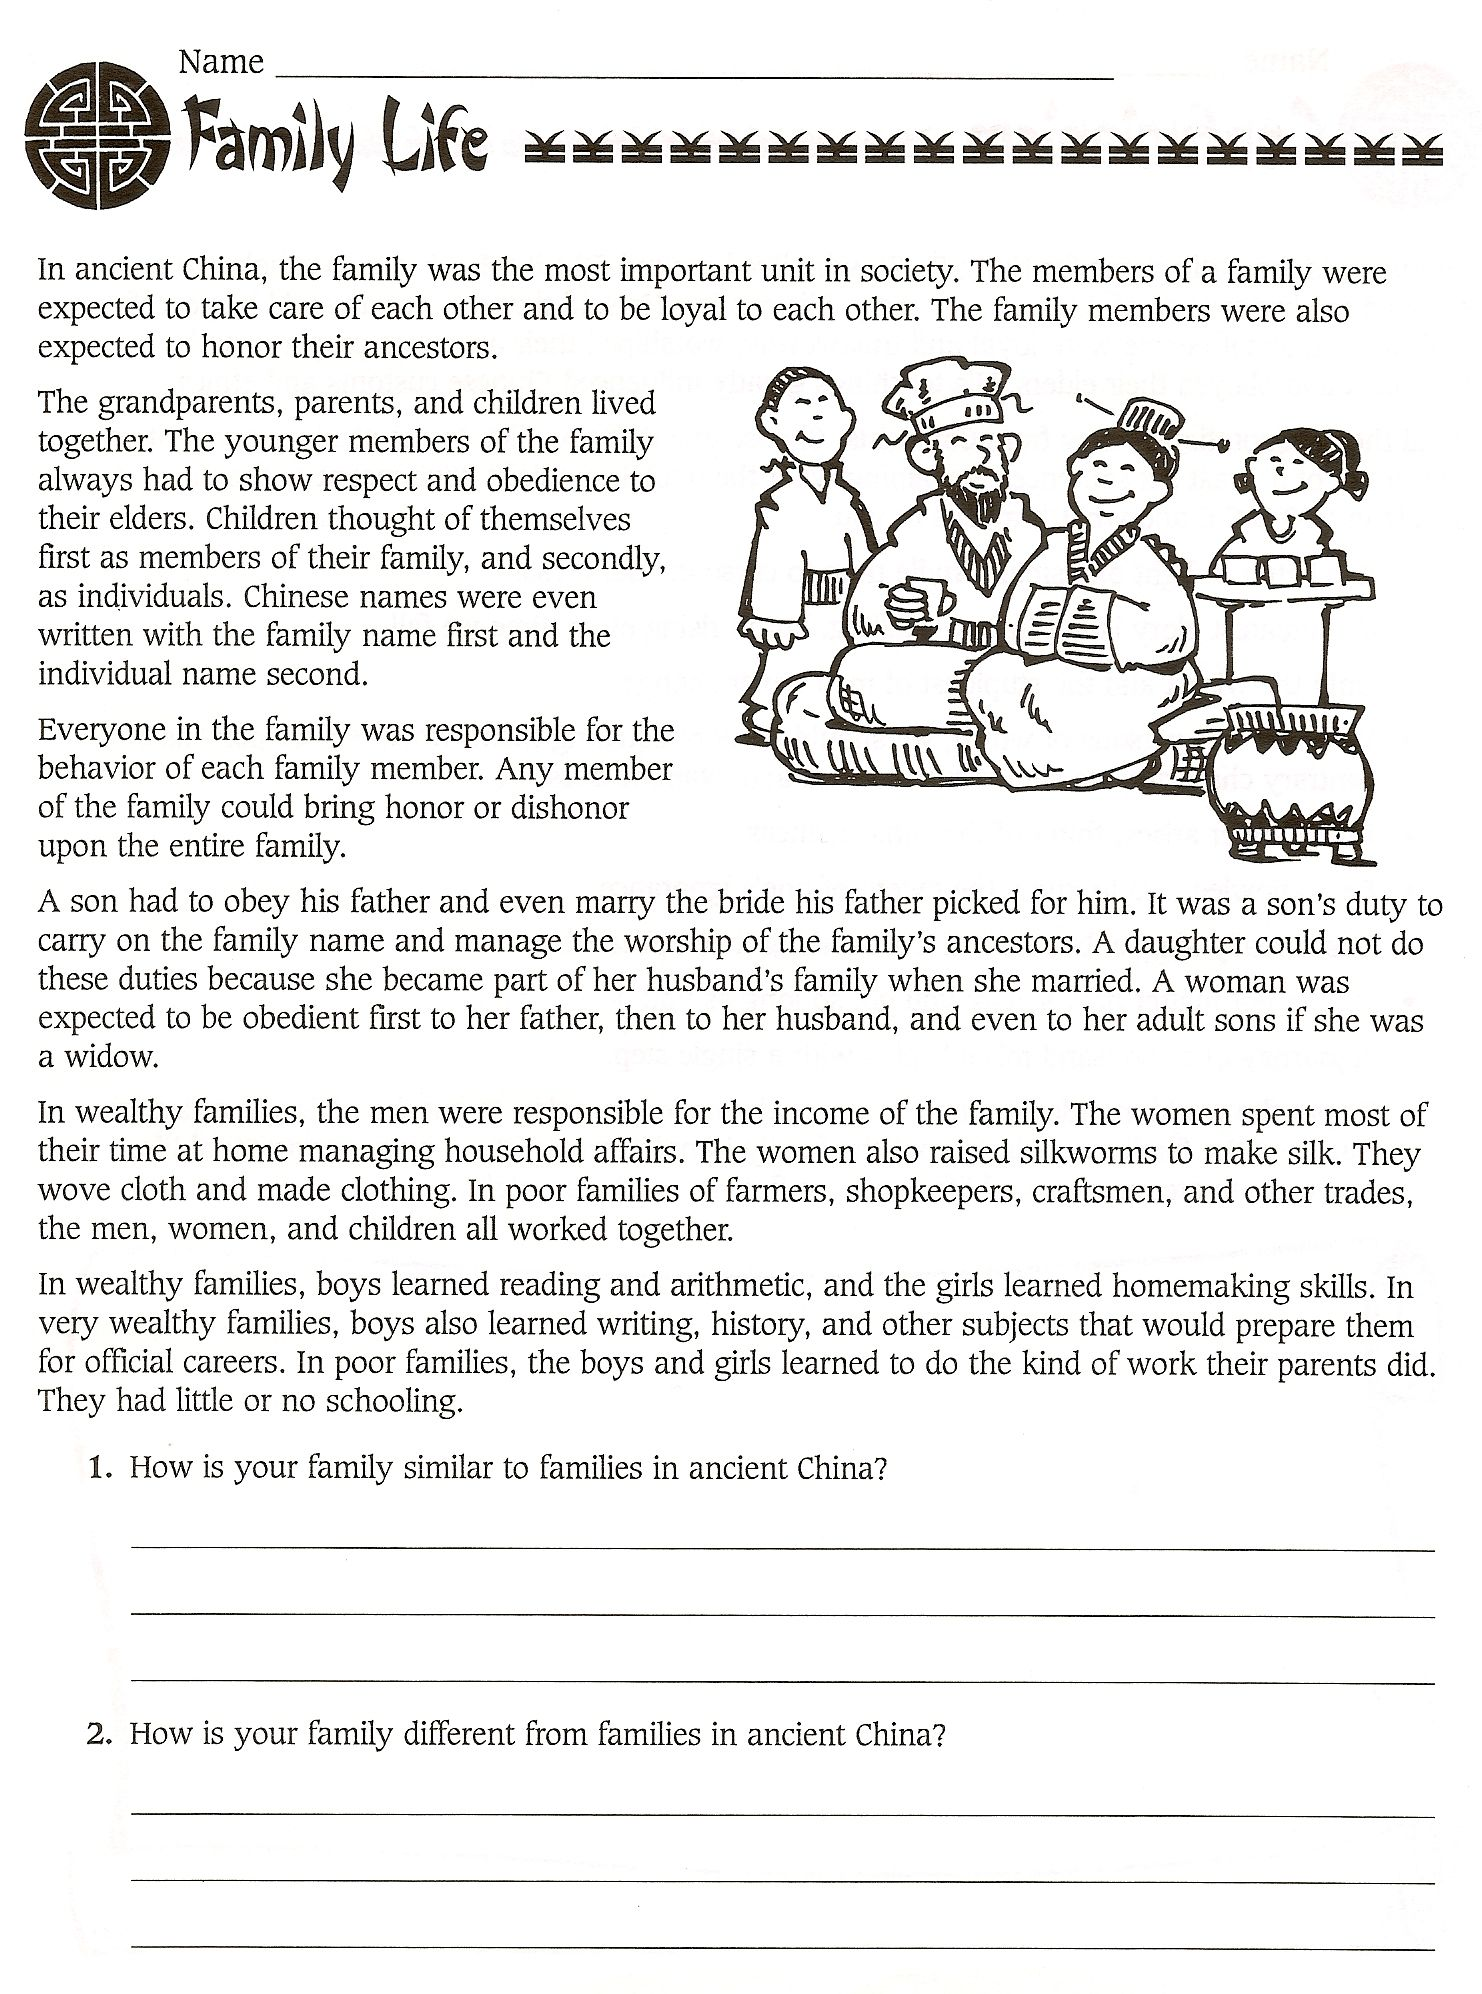 Worksheets Third Grade Social Studies Worksheets 6th grade social studies ancient china worksheets free free